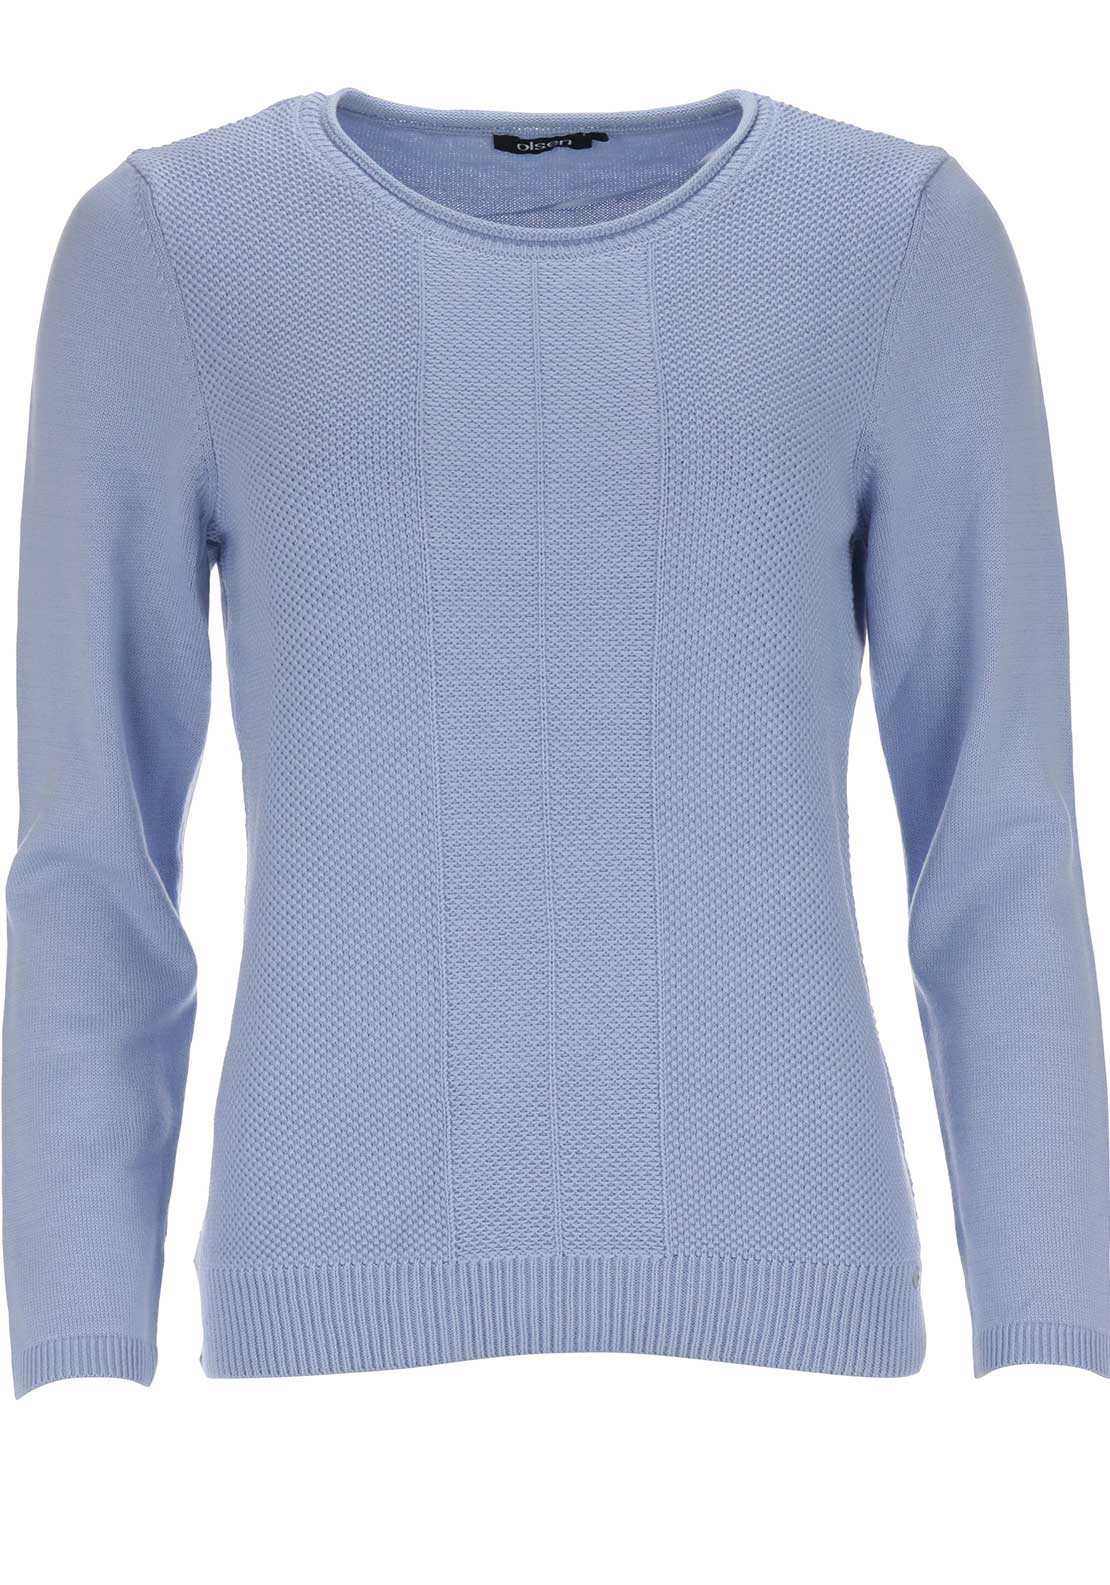 Olsen Textured Knit Jumper, Pale Blue